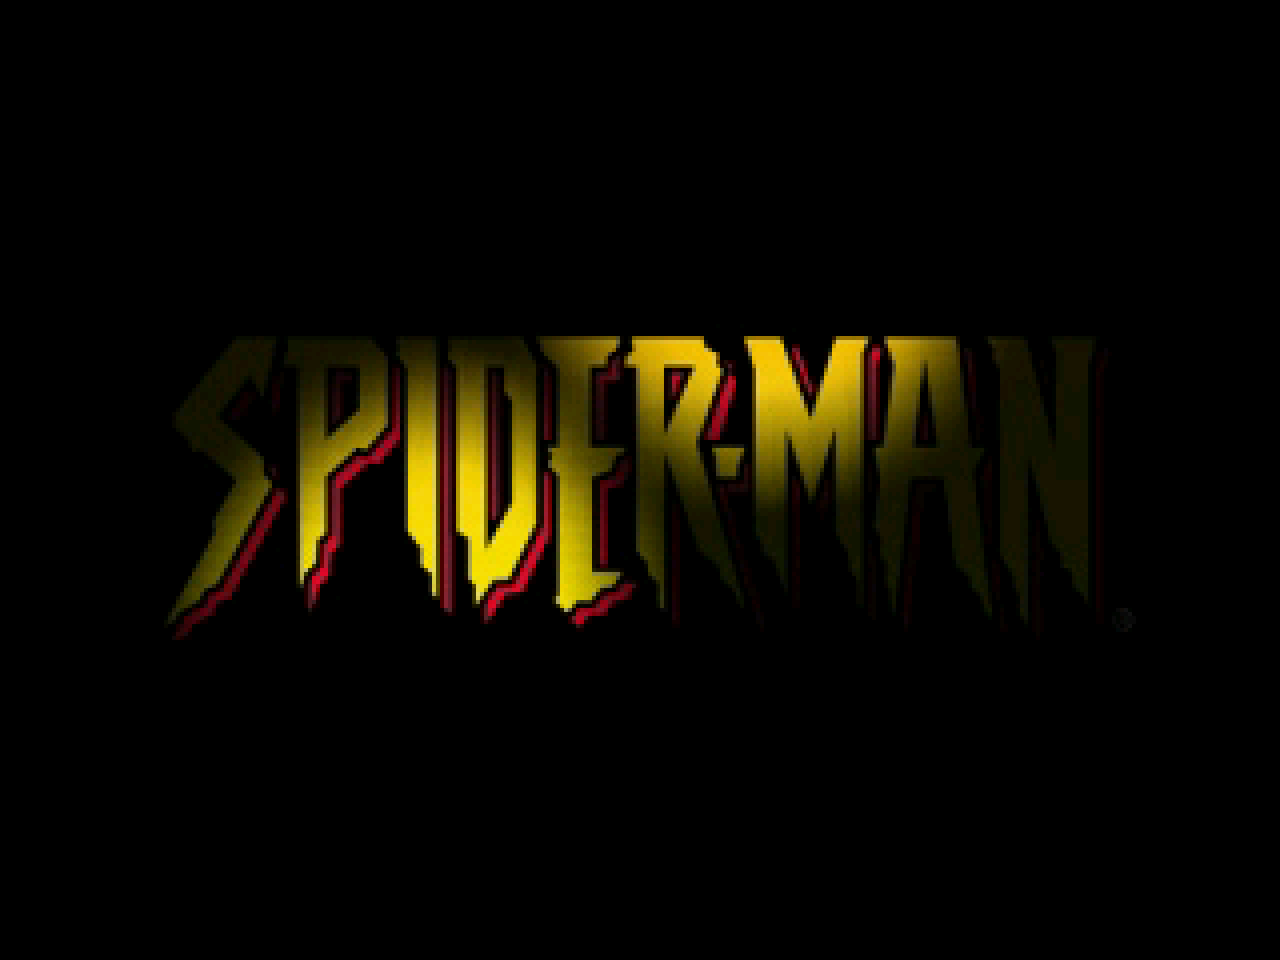 https://s3.eu-west-3.amazonaws.com/games.anthony-dessalles.com/Spider-Man 2 Enter Electro PS1 2020 - Screenshots/Spider-Man 2 Enter Electro-201125-184922.png